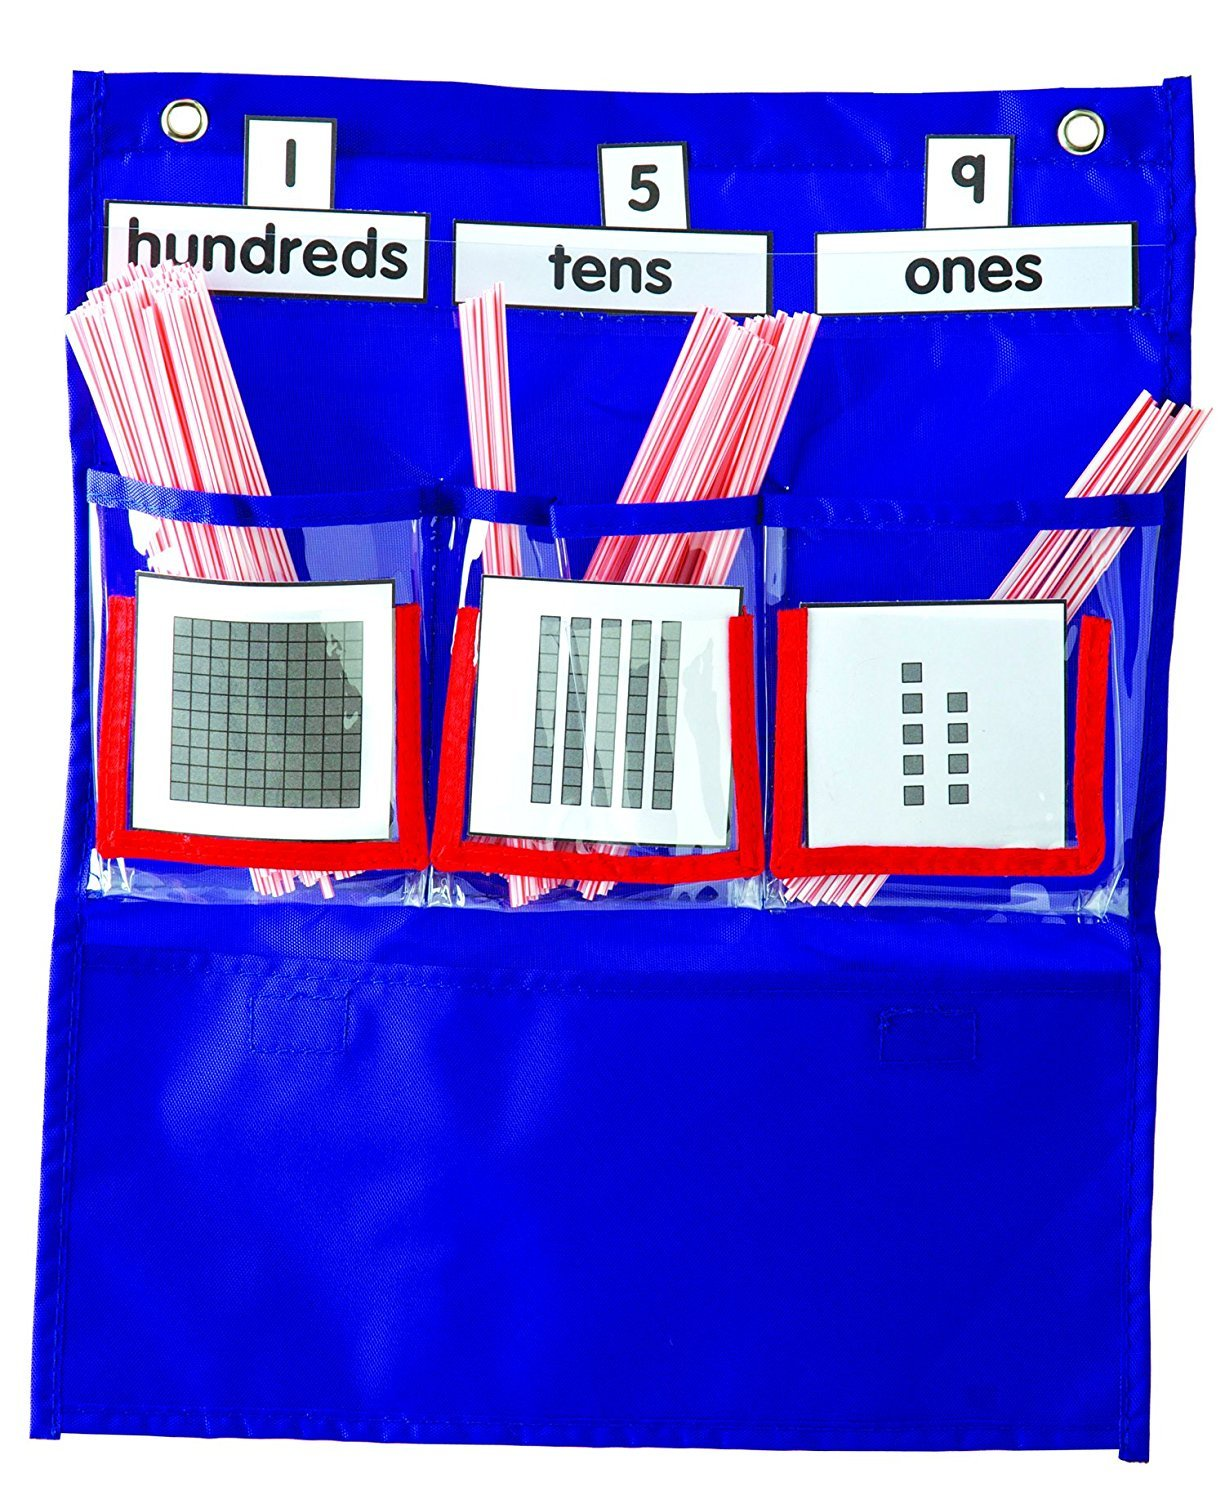 CD 158026 DELUXE COUNTING CADDY POCKET CHART